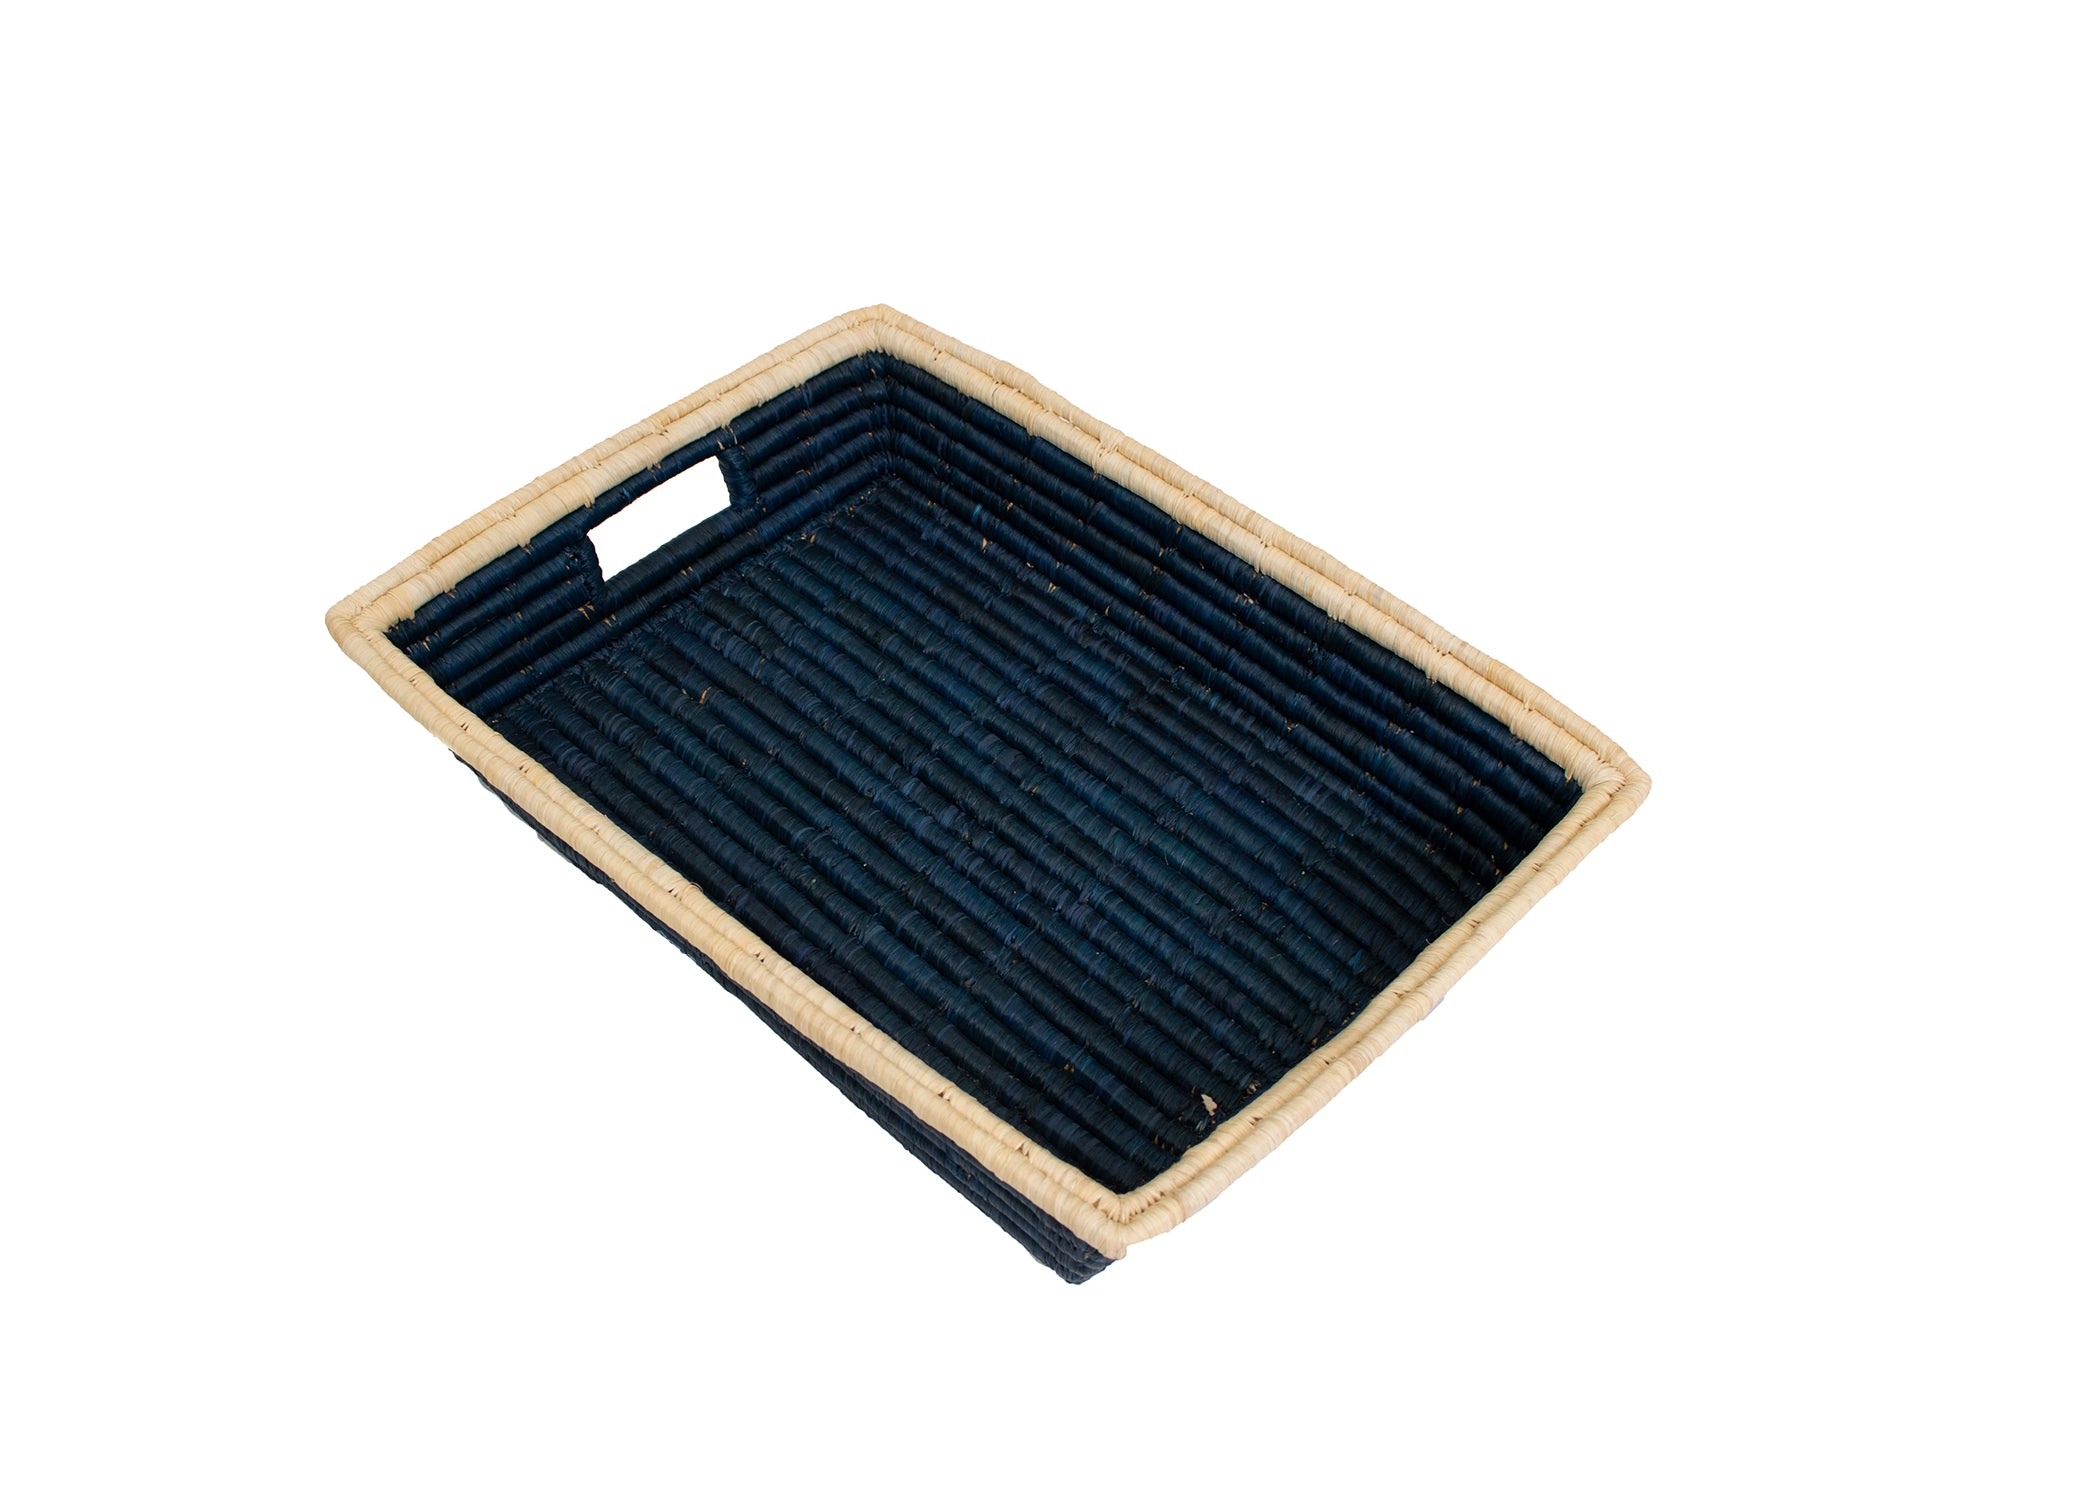 Blue Night Serving Tray - KAZI - Artisan made high quality home decor and wall art